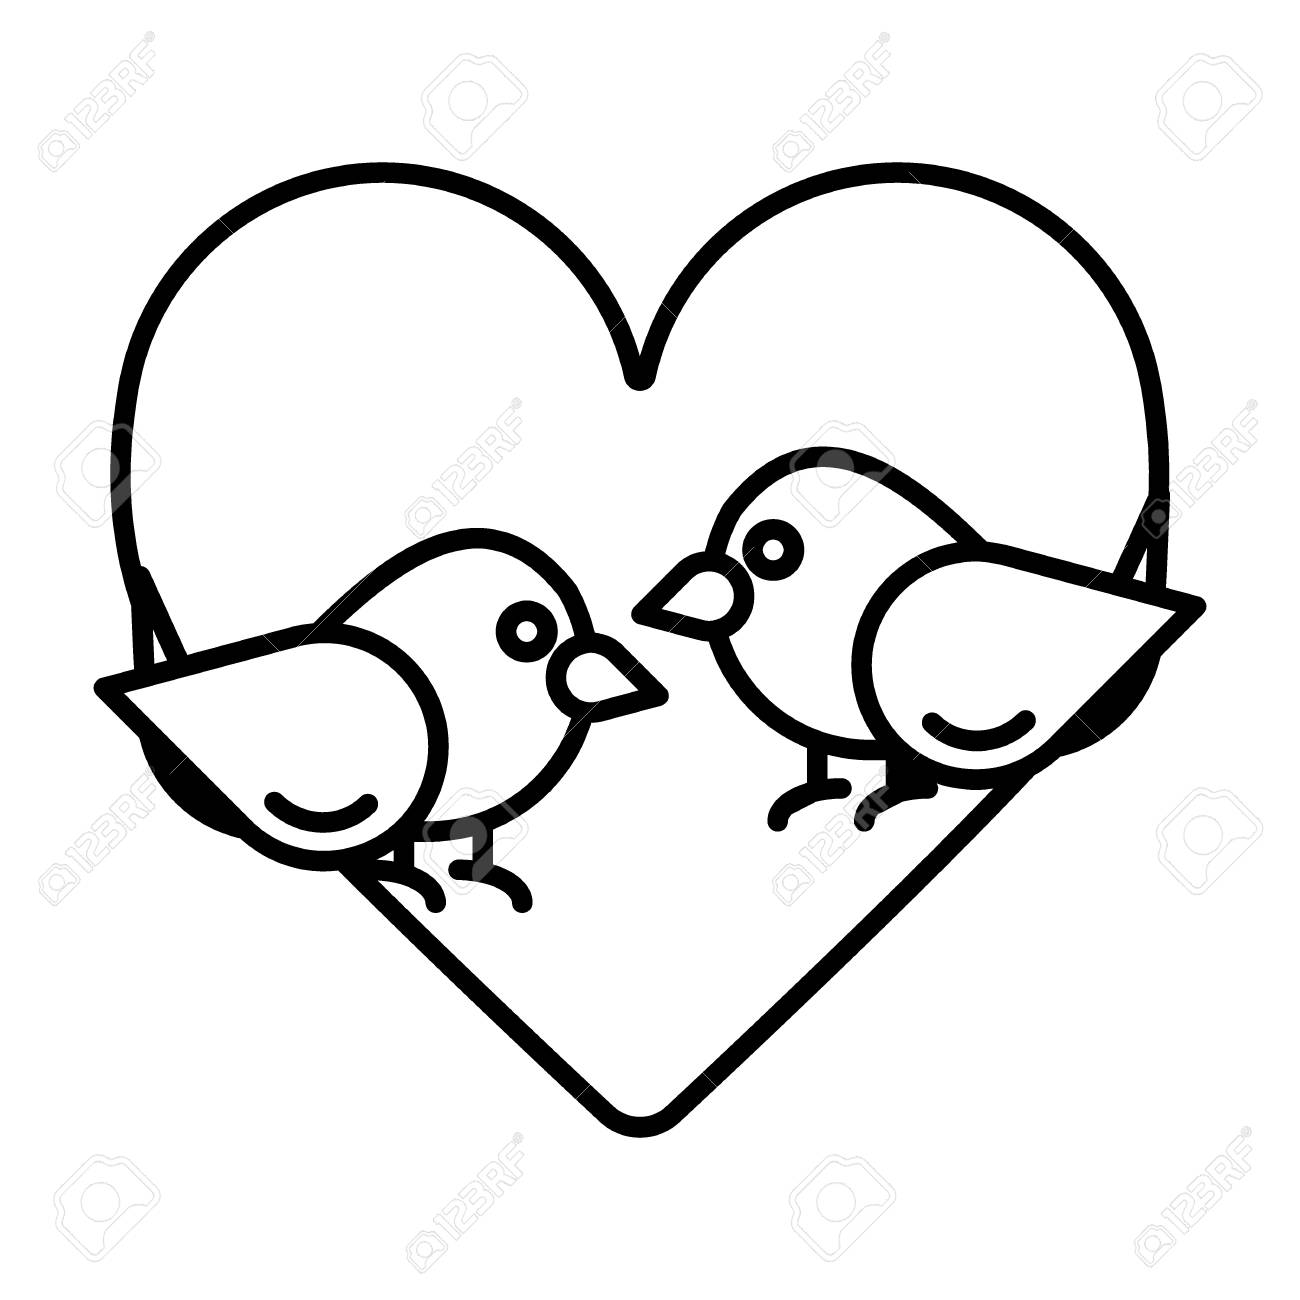 Love Birds With Heart Icon Vector Flat Sign Outline Pictogram Royalty Free Cliparts Vectors And Stock Illustration Image 94259736